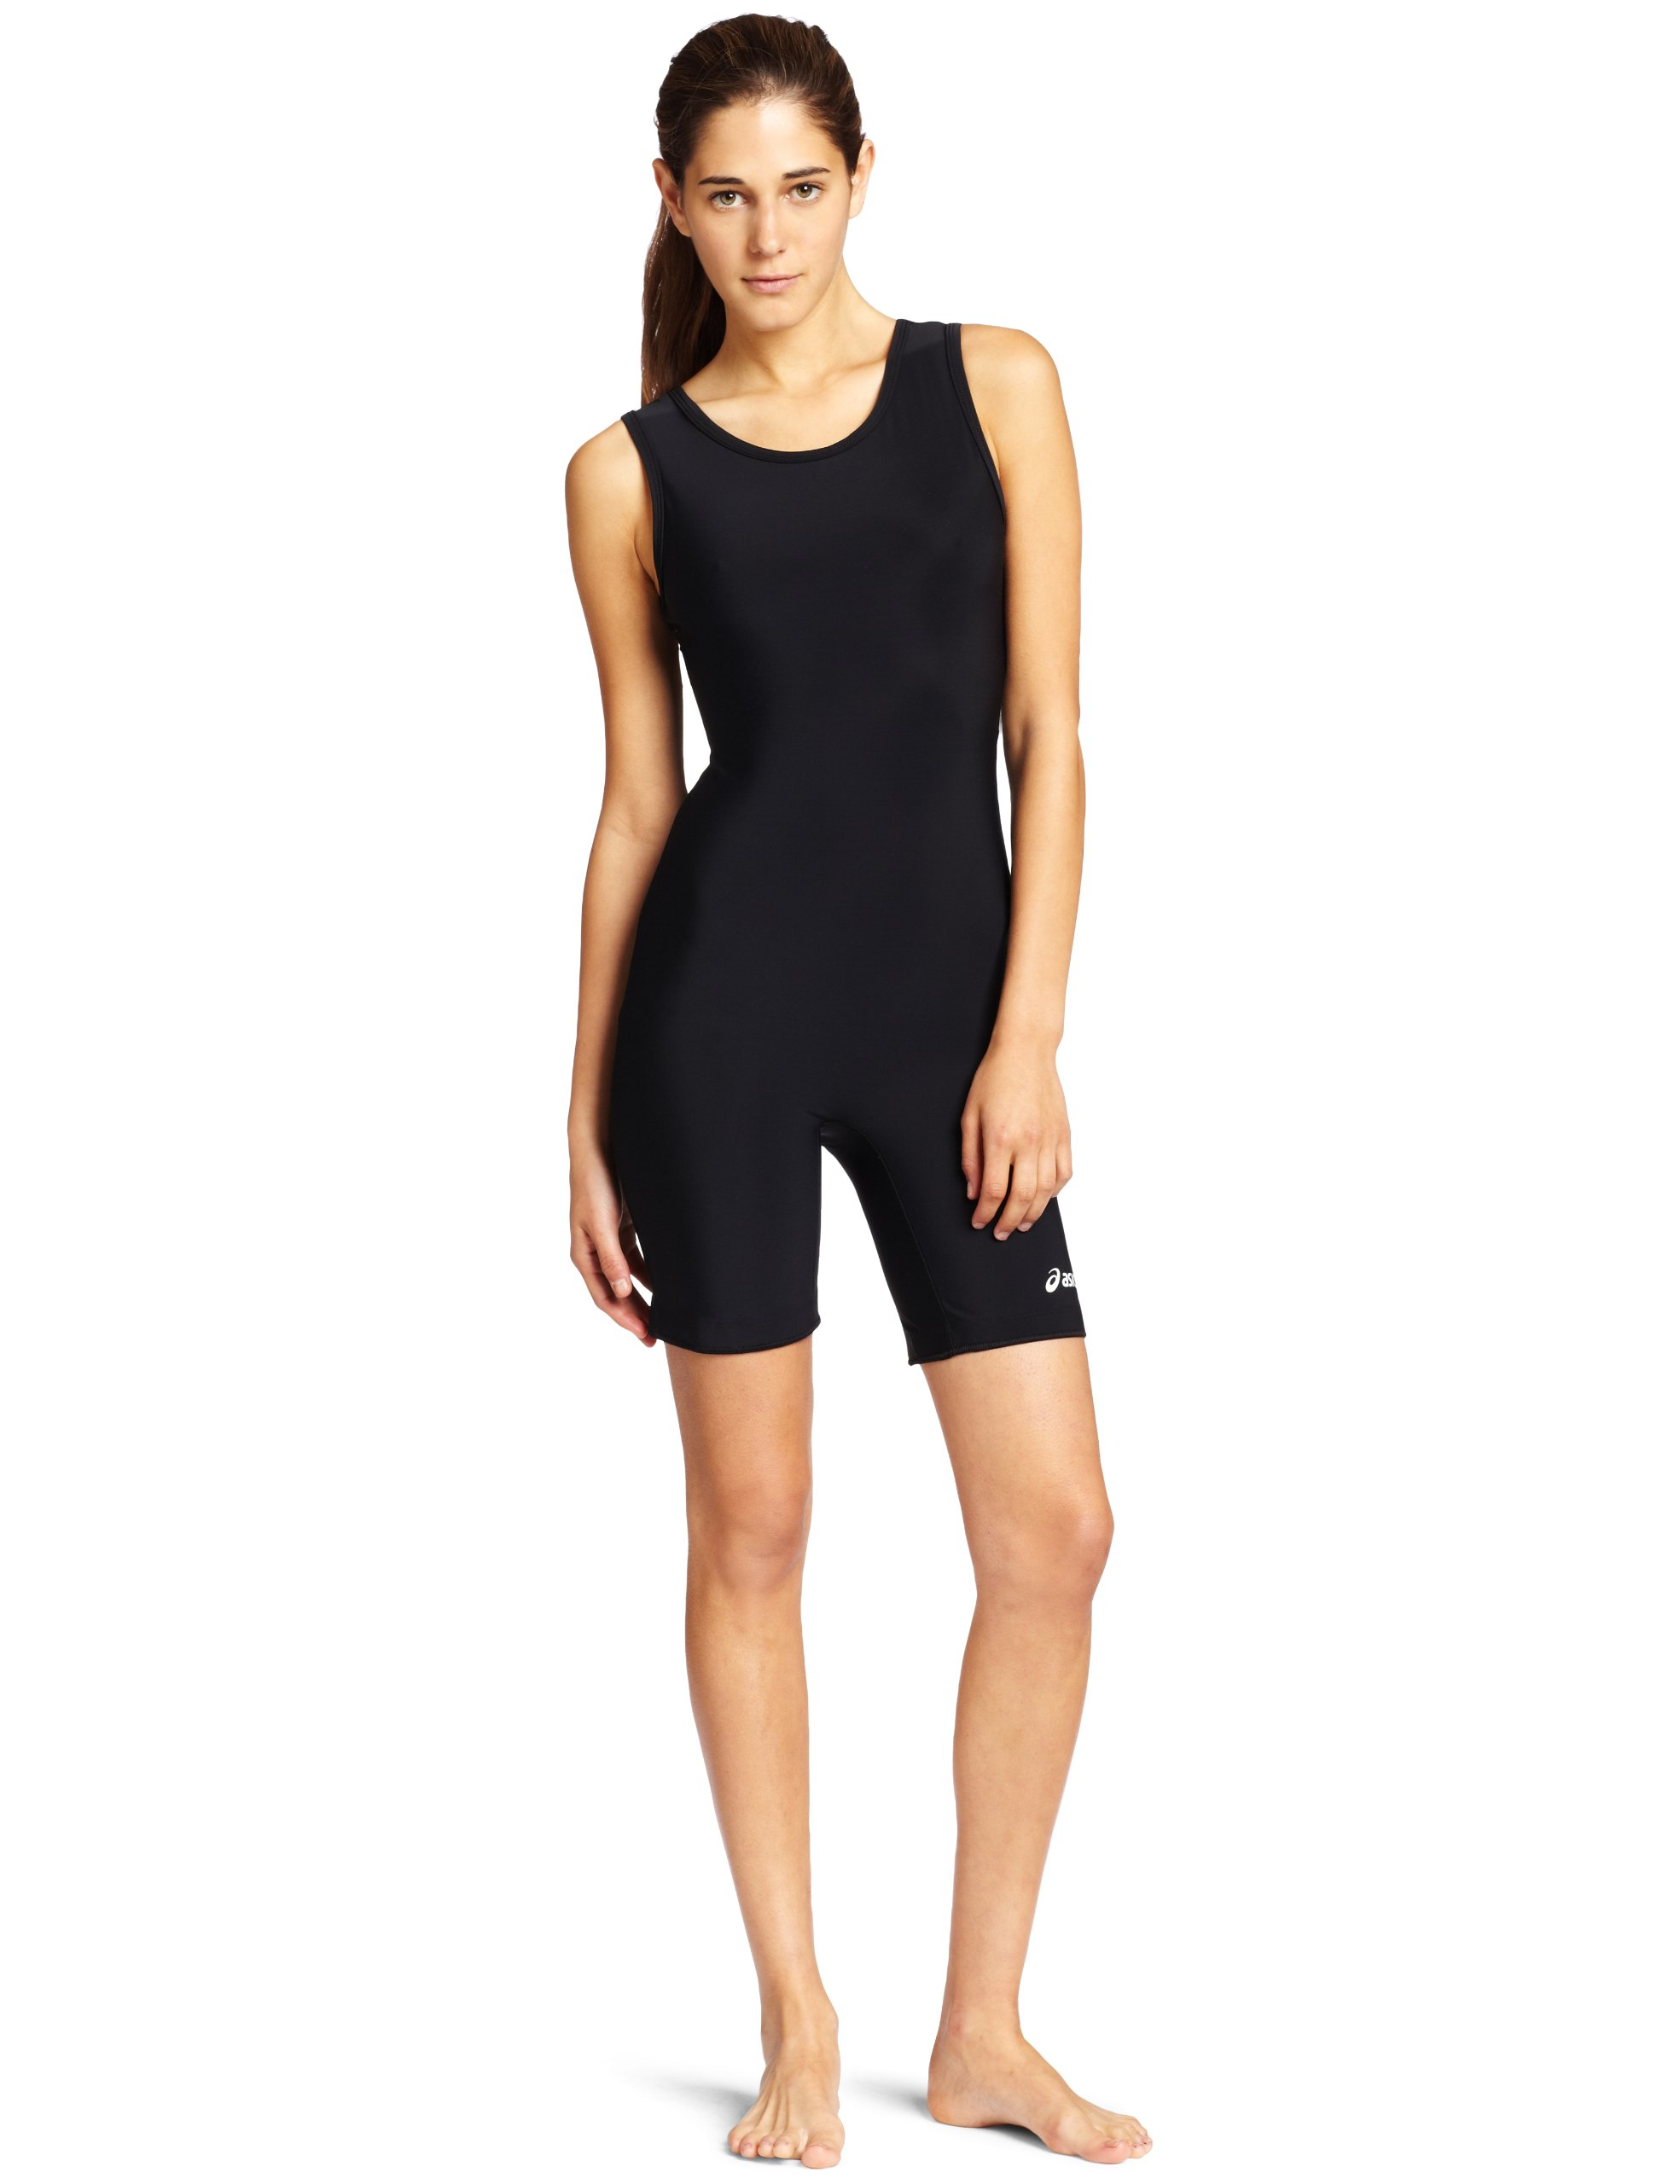 ASICS Women's Solid Modified Singlet, Black, Large by ASICS